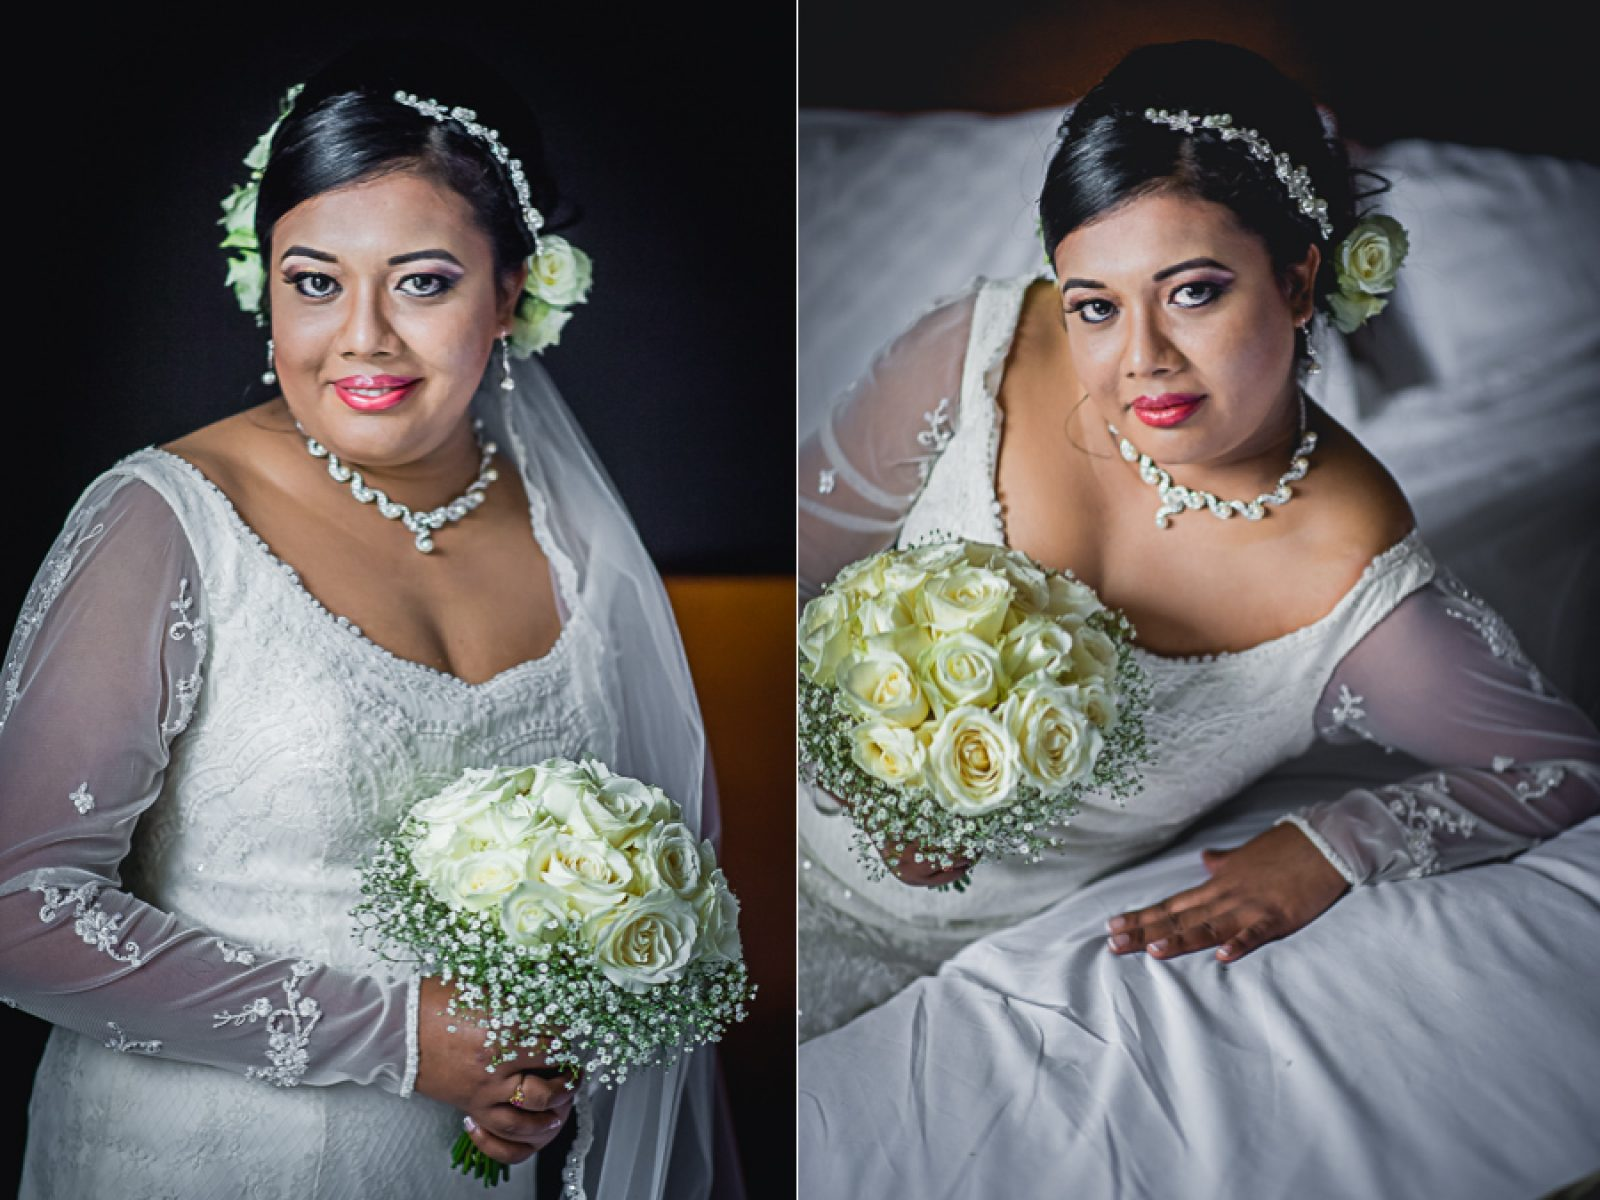 131 1600x1200 - Darshani and Anthony - wedding photographer in London